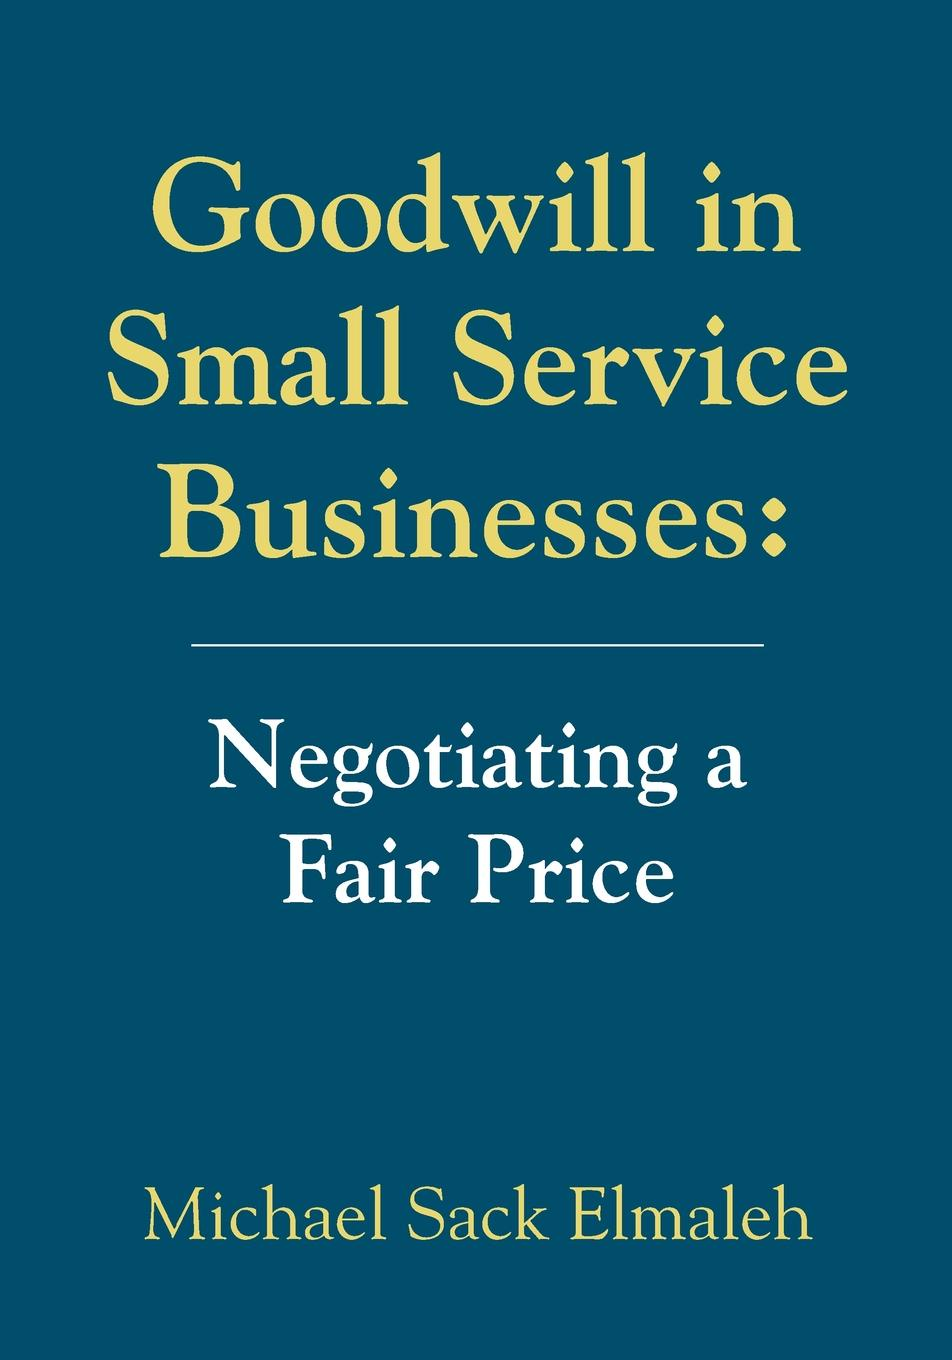 Michael Sack Elmaleh. Goodwill in Small Service Businesses. Negotiating a Fair Price